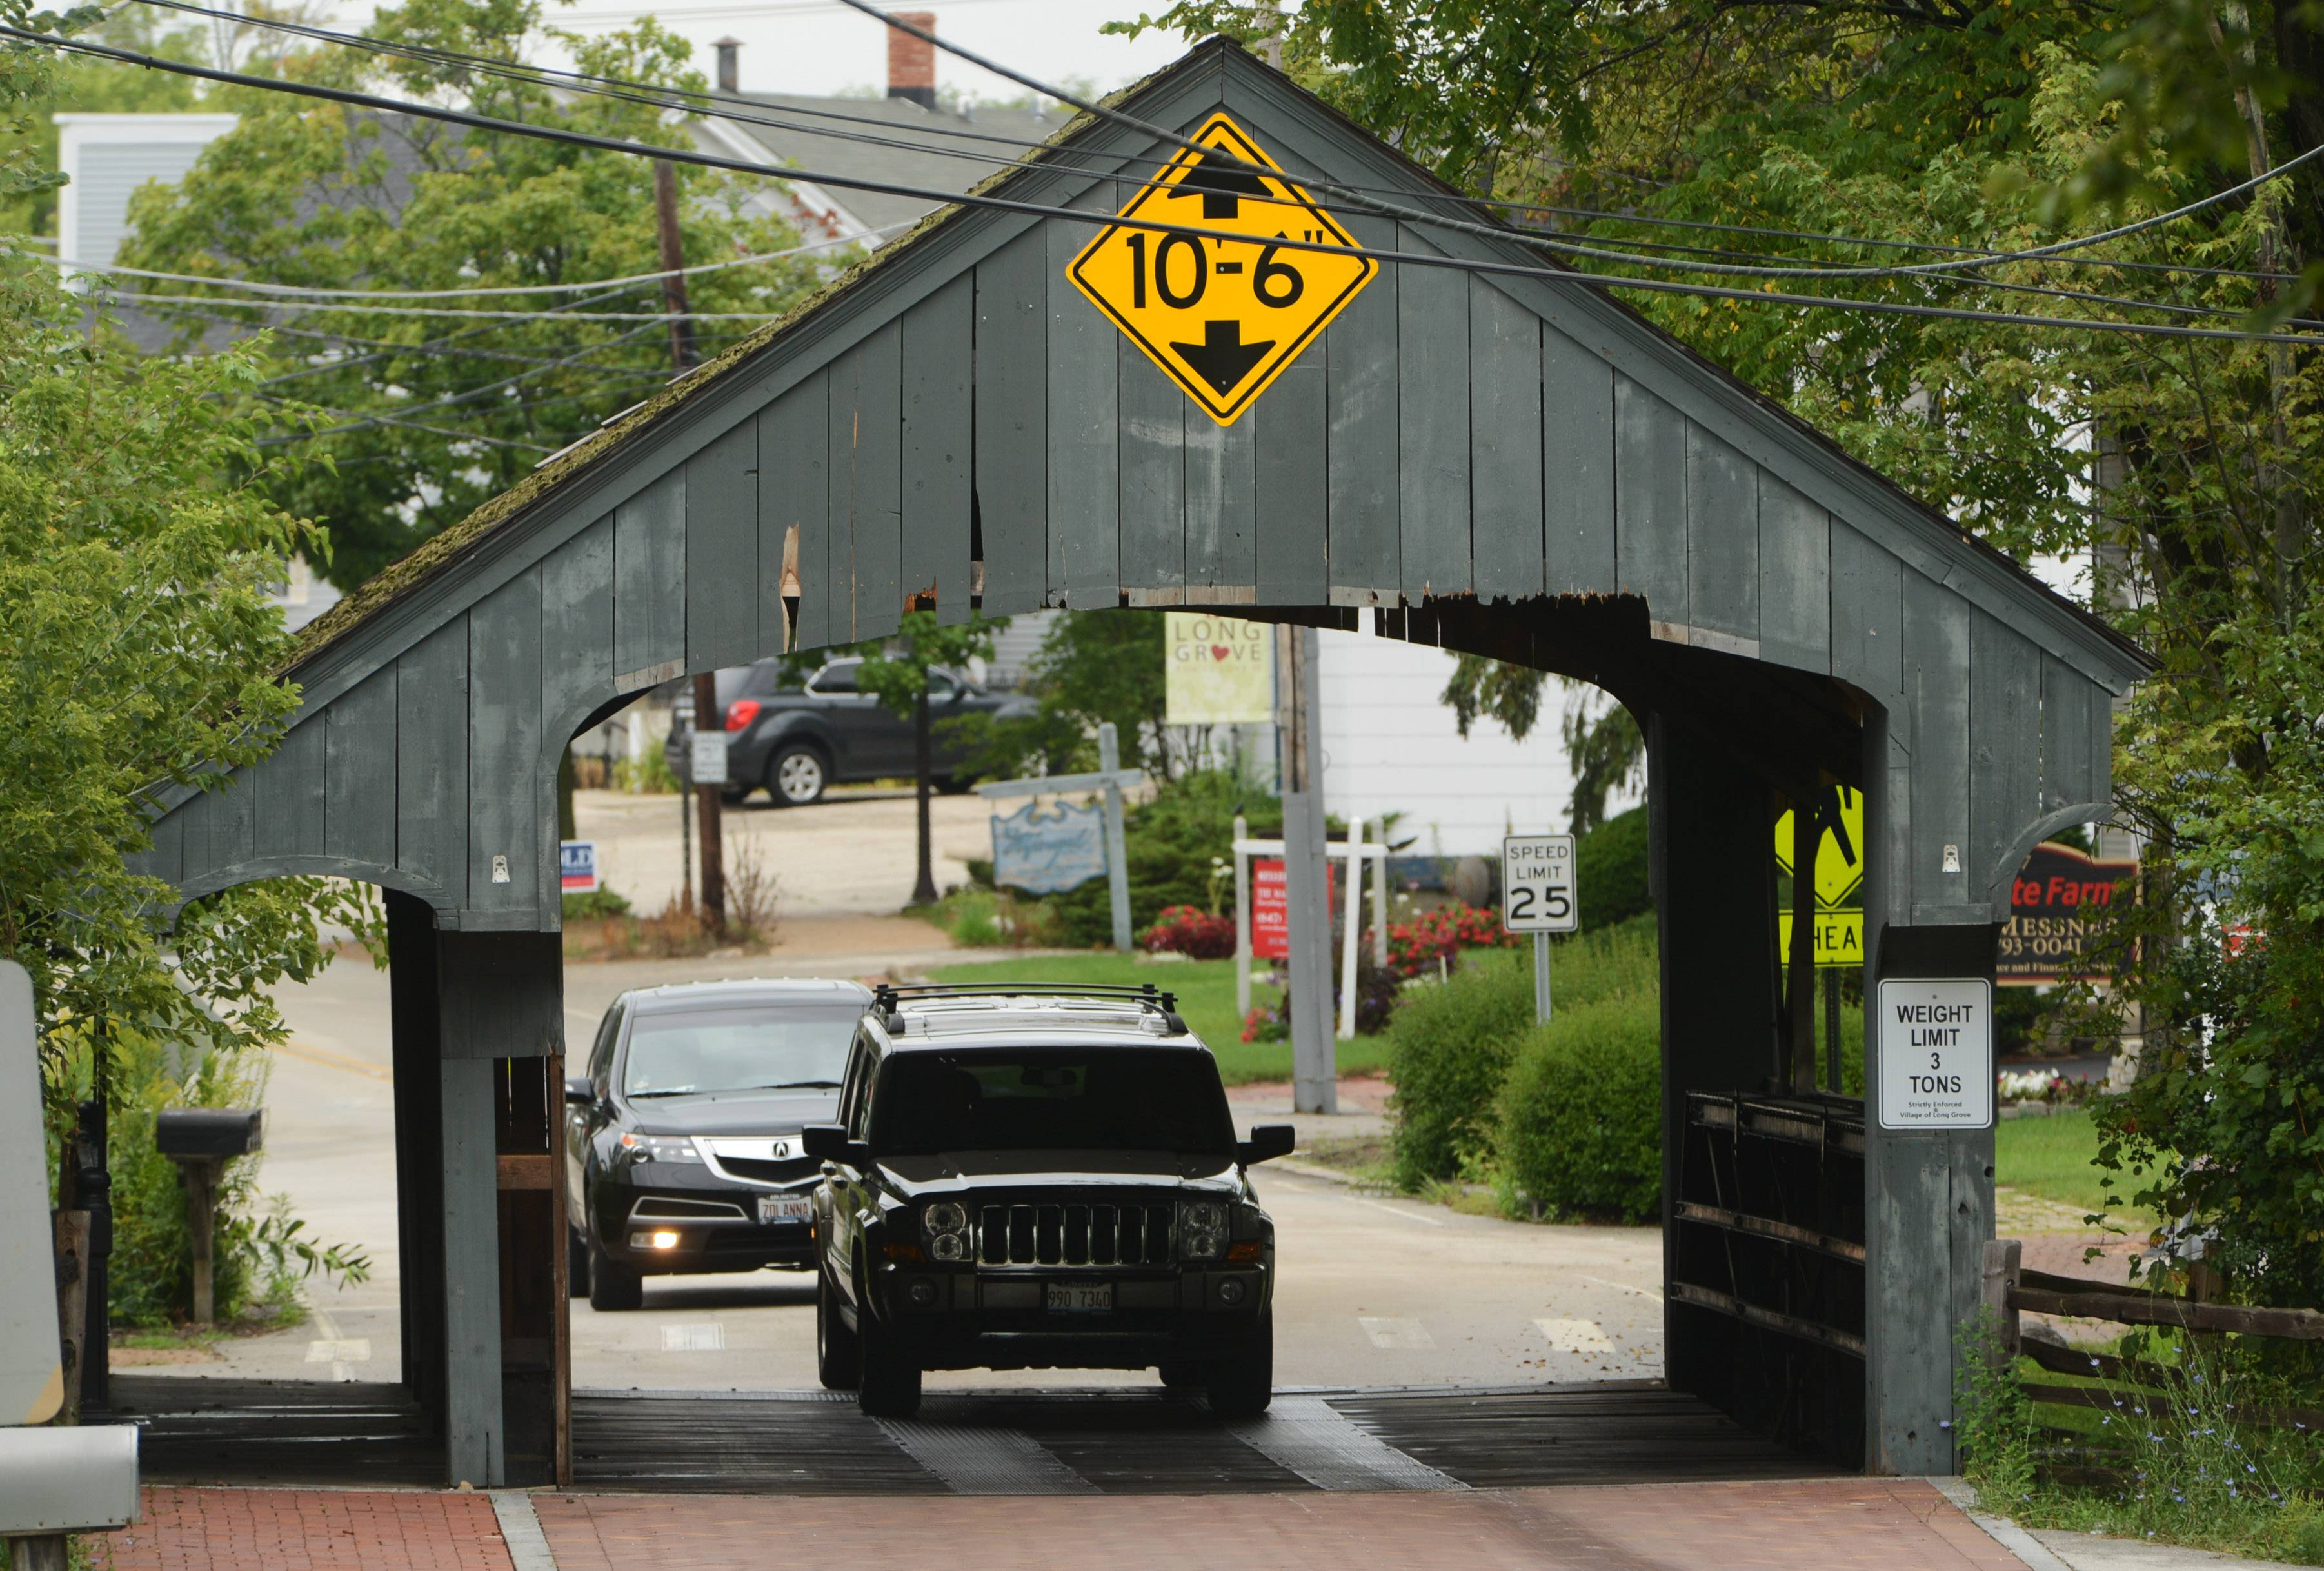 Private fundraising campaign begins to save Long Grove covered bridge